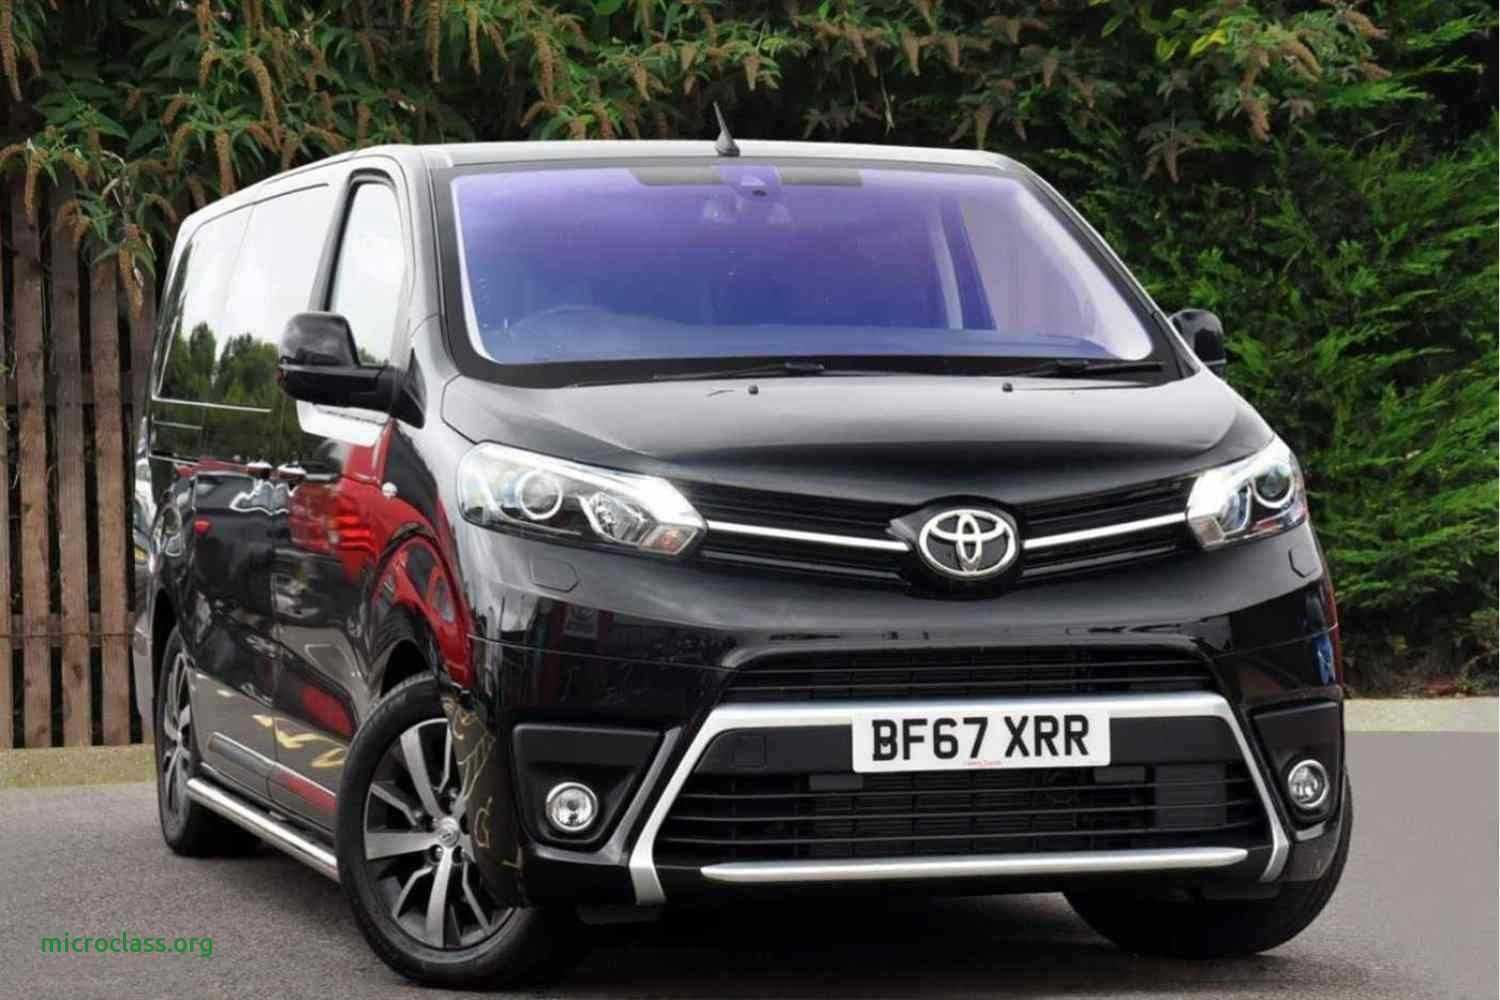 51 The Best 2020 New Toyota Wish Price And Release Date